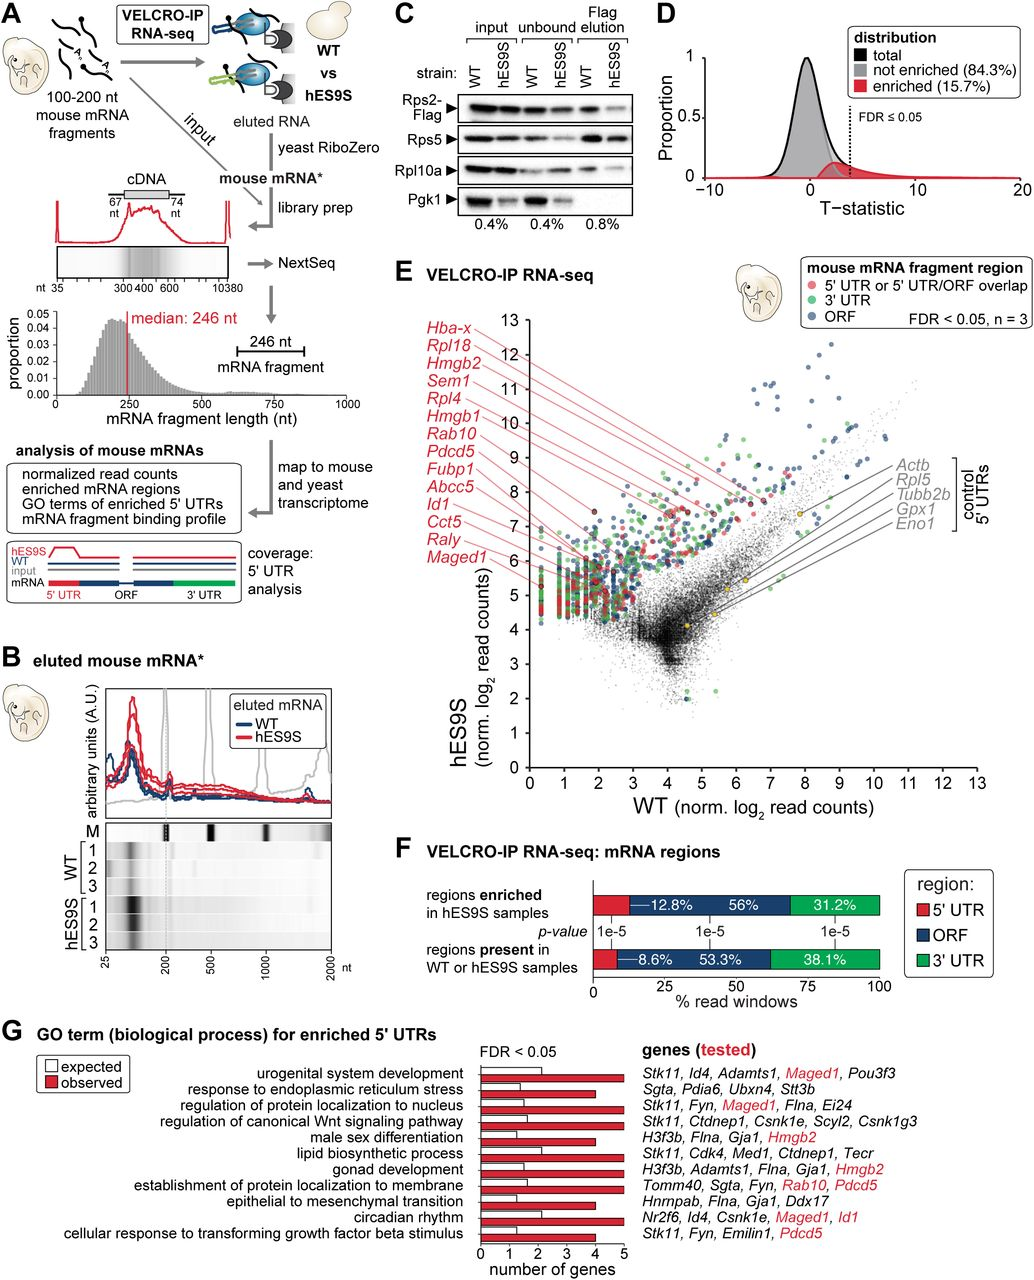 VELCRO-IP RNA-seq identifies global ES-mRNA interactions with positional resolution on mRNAs. (A) For VELCRO-IP RNA-seq, mRNA was isolated from stage E11.5 mouse embryos, fragmented to 100-200 nt and used as input for the IP. Total RNA obtained from all samples after elution and yeast rRNA depletion obtains ribosome-bound mouse mRNA that was subjected to library preparation and Illumina high-throughput sequencing (NextSeq). We included an mRNA fragment input sample for reference. The distribution of mRNA fragment lengths for all sequenced libraries is plotted and the median fragment length is 246 nt. We then map all reads to the mouse and yeast transcriptomes and only further analyze reads exclusively mapping to mouse mRNAs. (B) Eluted and yeast rRNA-depleted mouse RNA from three independent replicates of WT and hES9S VELCRO-IP experiments were analyzed on a mRNA Pico Chip (Agilent) on a Bioanalyzer (Agilent) and a zoomed-in view of the Bioanalyzer quantification and electronic gel analysis is shown. The marker (M, grey) is overlaid for reference. See also Figure S3E . (C) WB analysis as in Figure 3C to monitor efficient IP of 40S ribosomes for RNA-seq of mouse mRNA fragments. Representative of n = 3 is shown. (D) Kernel density of the distribution of t-statistics for test of differential enrichment of mRNA fragments bound to hES9S vs WT ribosomes is plotted in black. Empirical estimate of the decomposition of the distribution to null and non-null tests are plotted in grey and red, respectively. Dotted line indicates where the local FDR of 0.05 is. (E) RNA-seq results of independent replicates (n = 3) for each WT and hES9S samples. Normalized log read counts are presented for WT and hES9S-enriched mRNA fragments. Fragments less than FDR